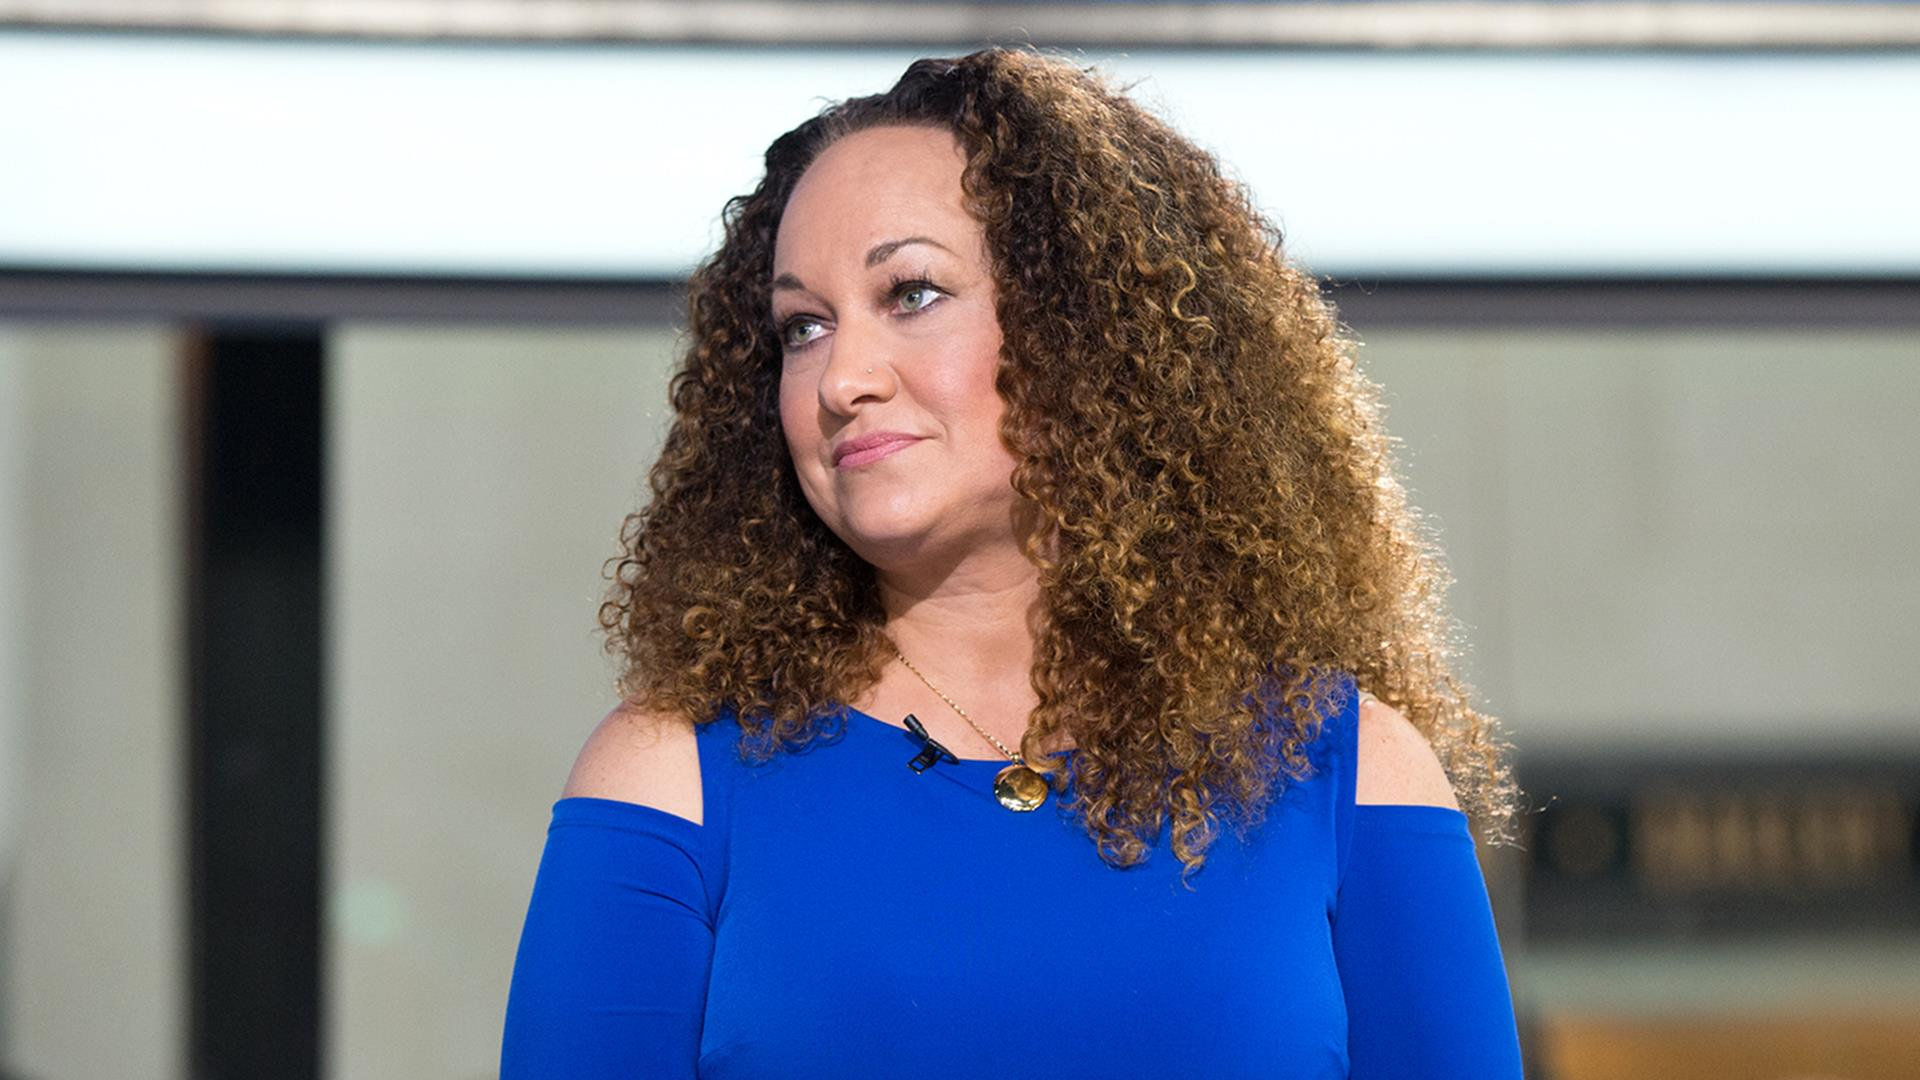 Rachel Dolezal on her new book, starting life over and identifying as black - TODAY.com